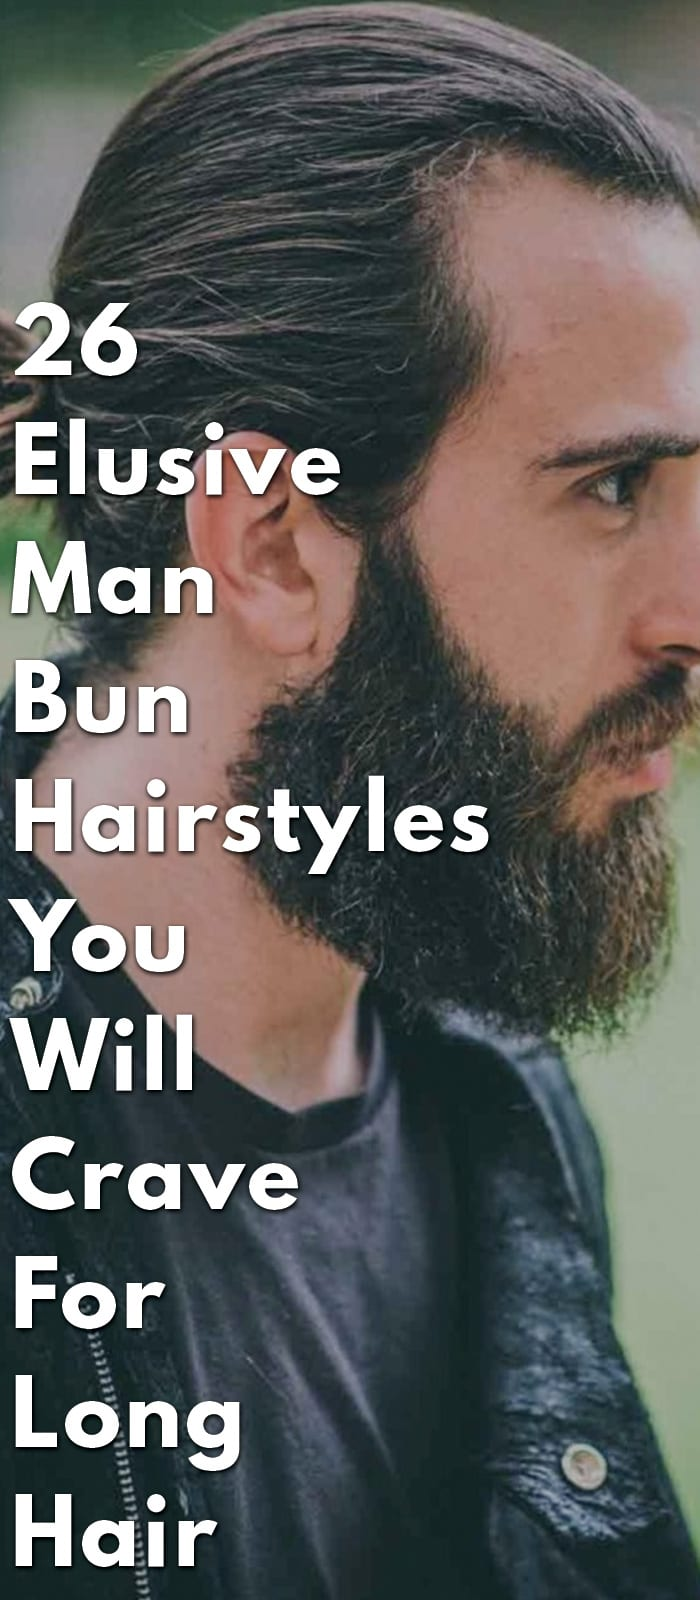 26-Elusive-Man-Bun-Hairstyles-You-Will-Crave-For-Long-Hair